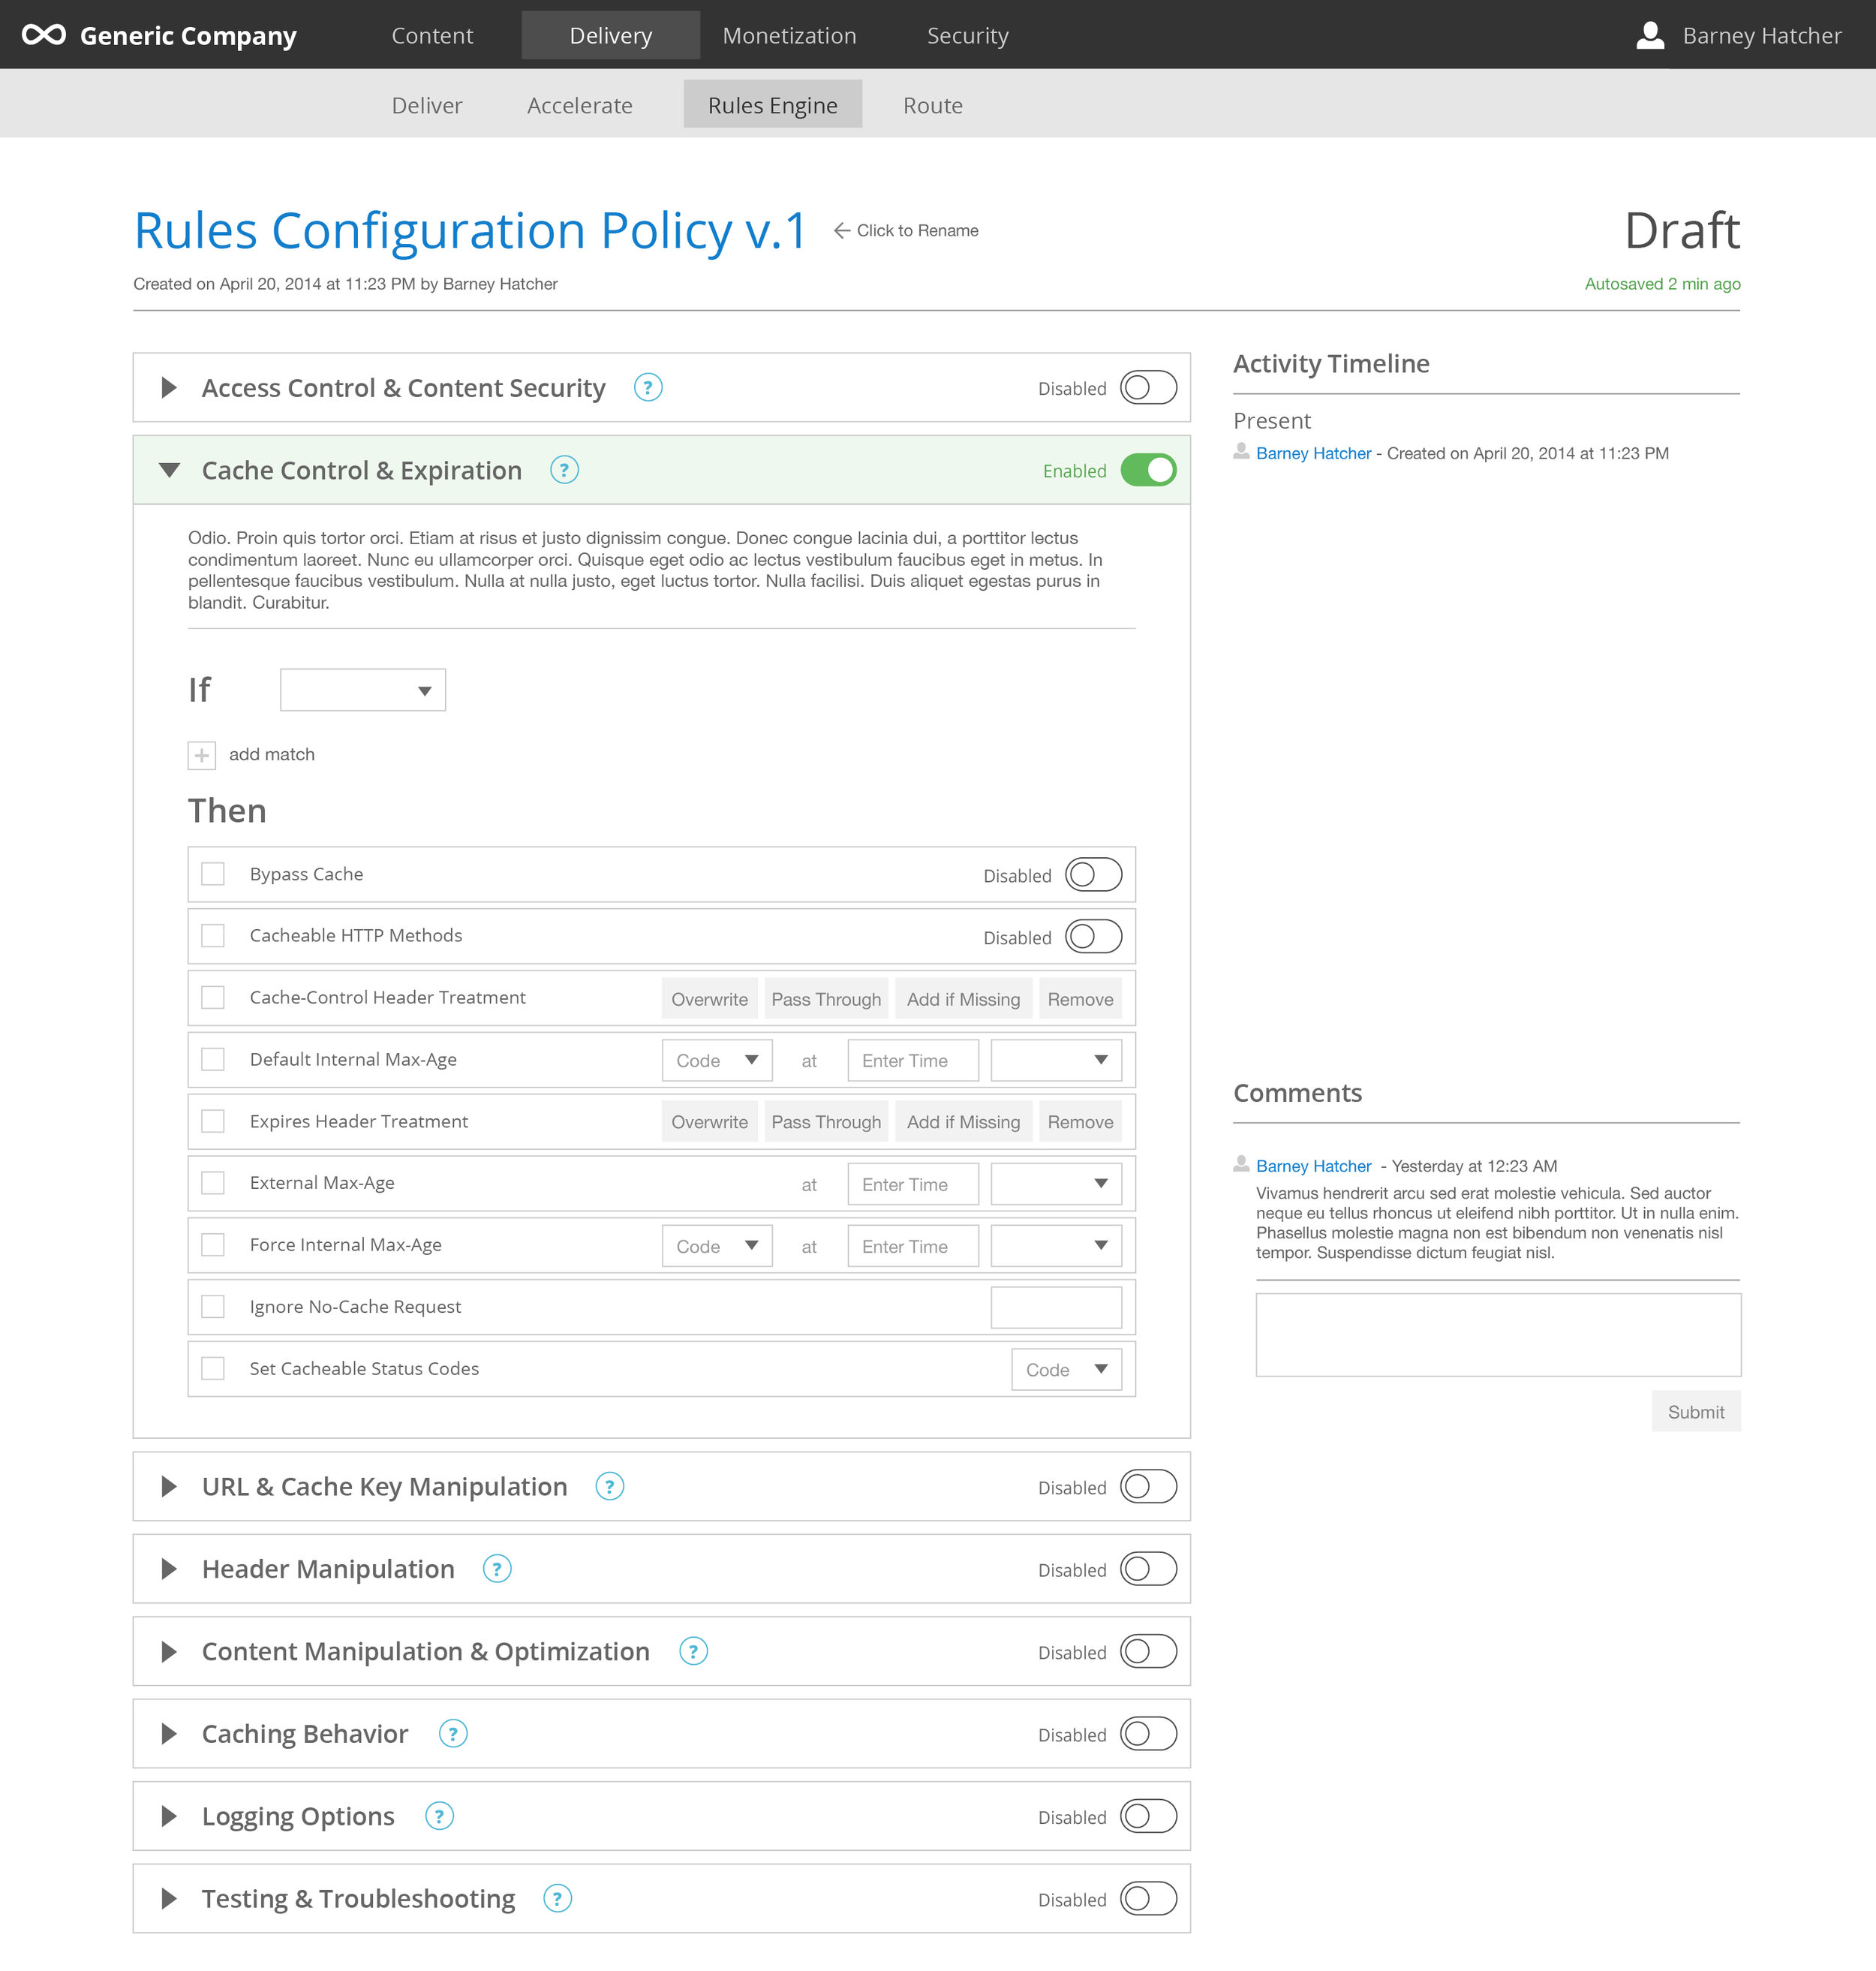 ux-rules-engine-v1_configuration policy-draft-1 enabled-blank.png